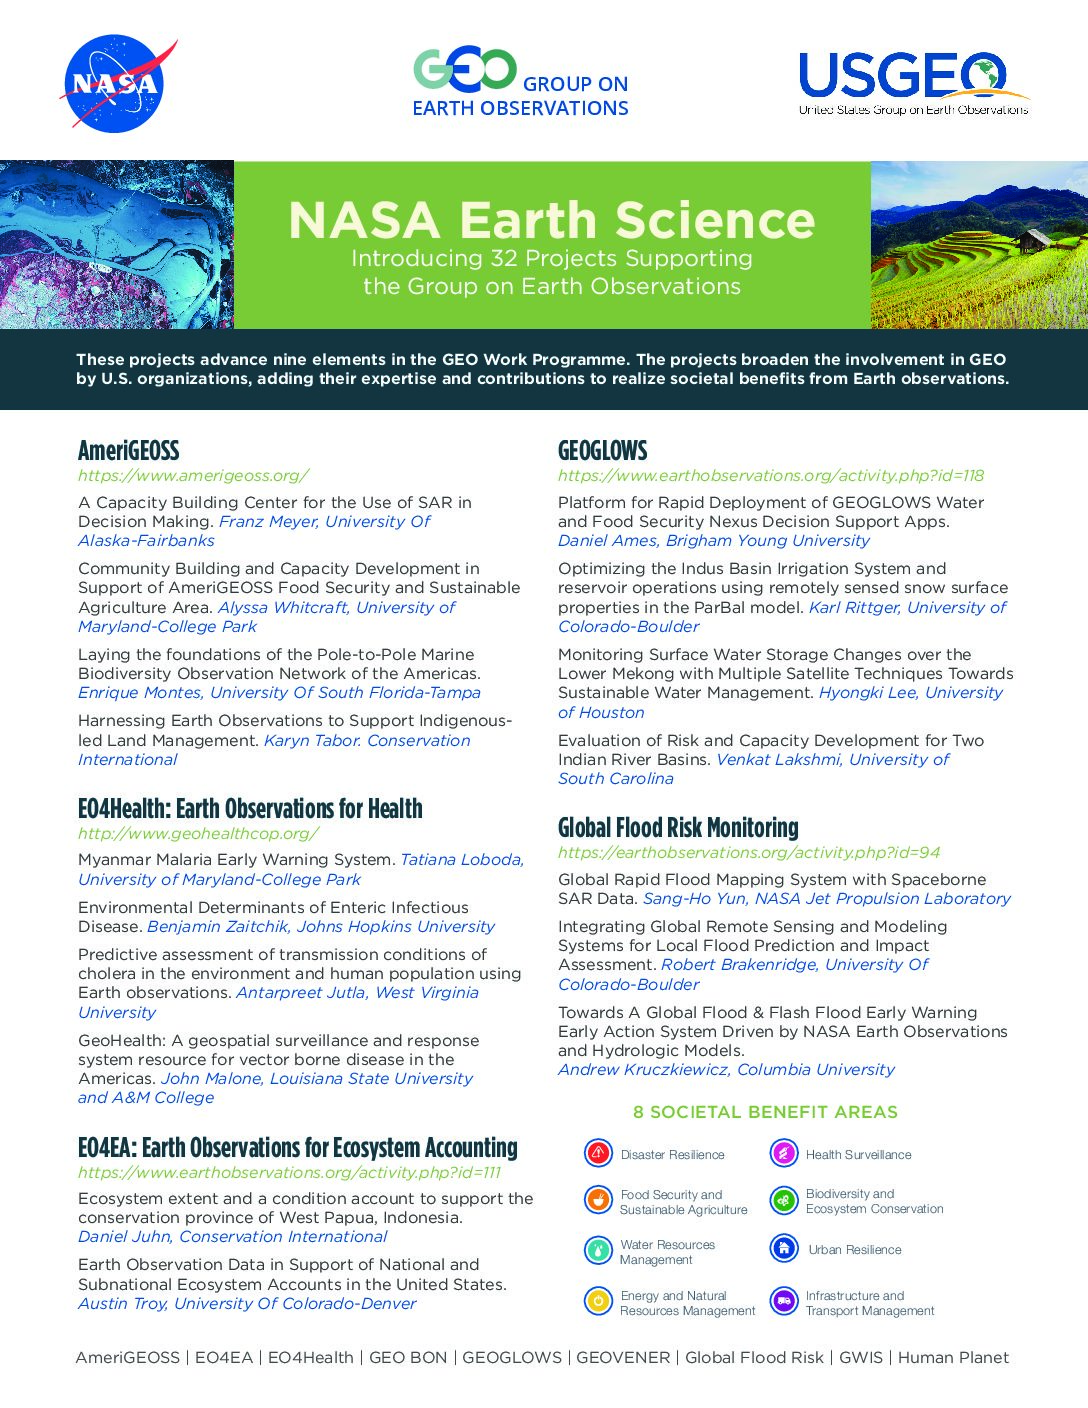 NASA announces 32 remote sensing projects supporting the Group on Earth Observations